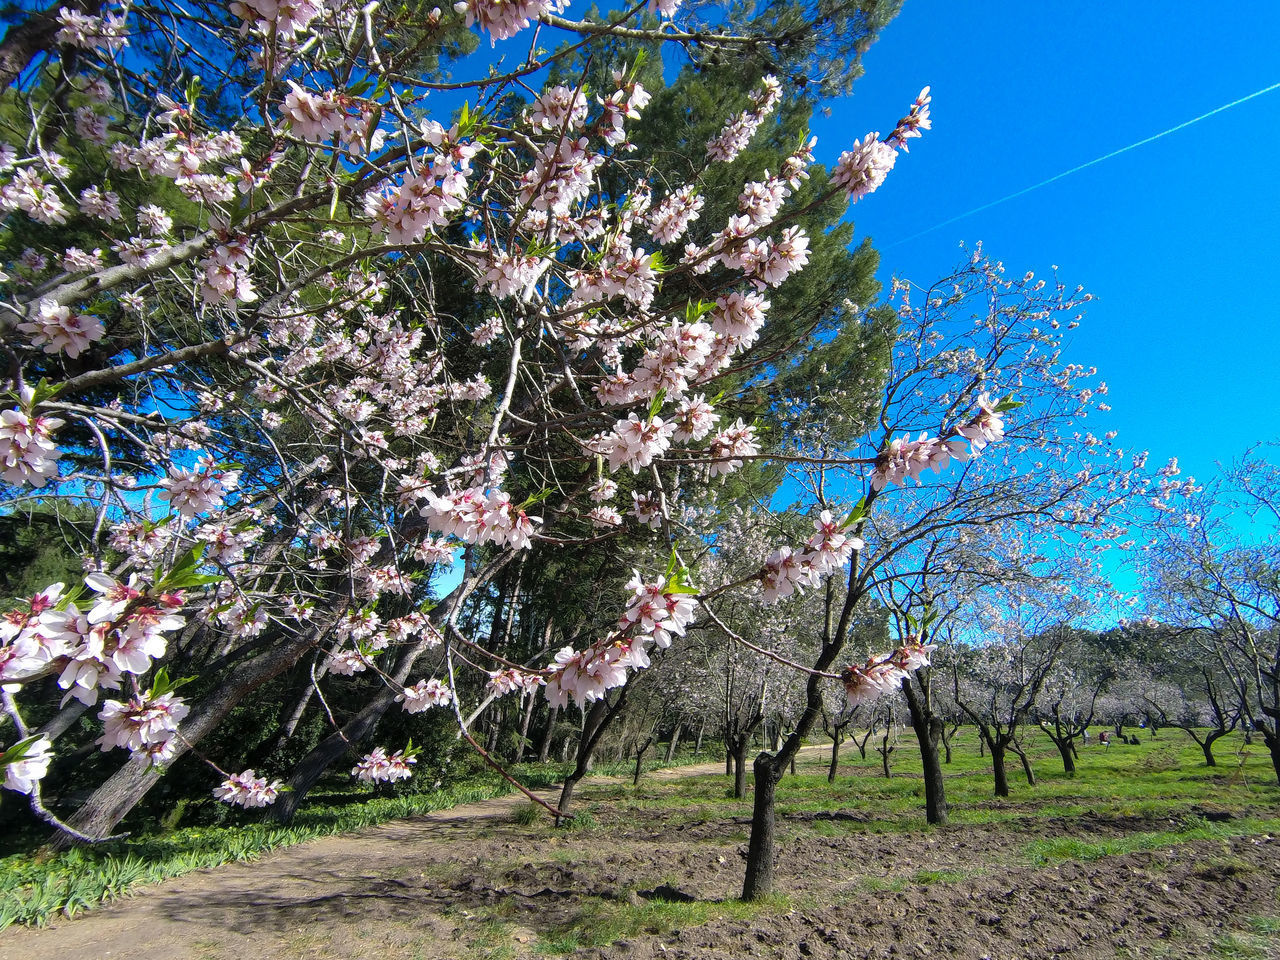 VIEW OF CHERRY BLOSSOM TREE IN SPRING